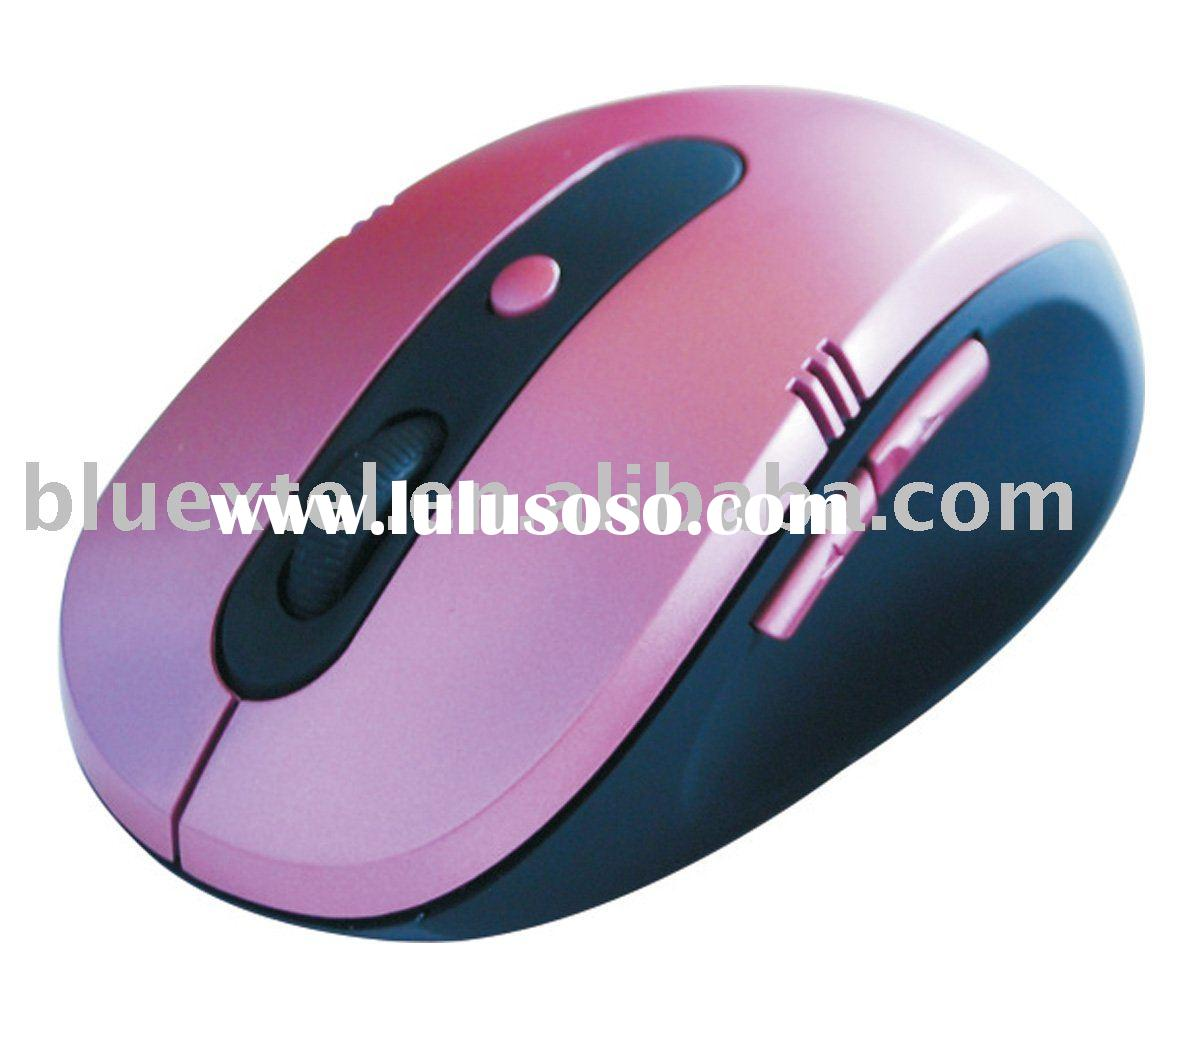 Bluetooth Mouse, Mini bluetooth mouse, wireless mouse, 3D mouse, computer mouse